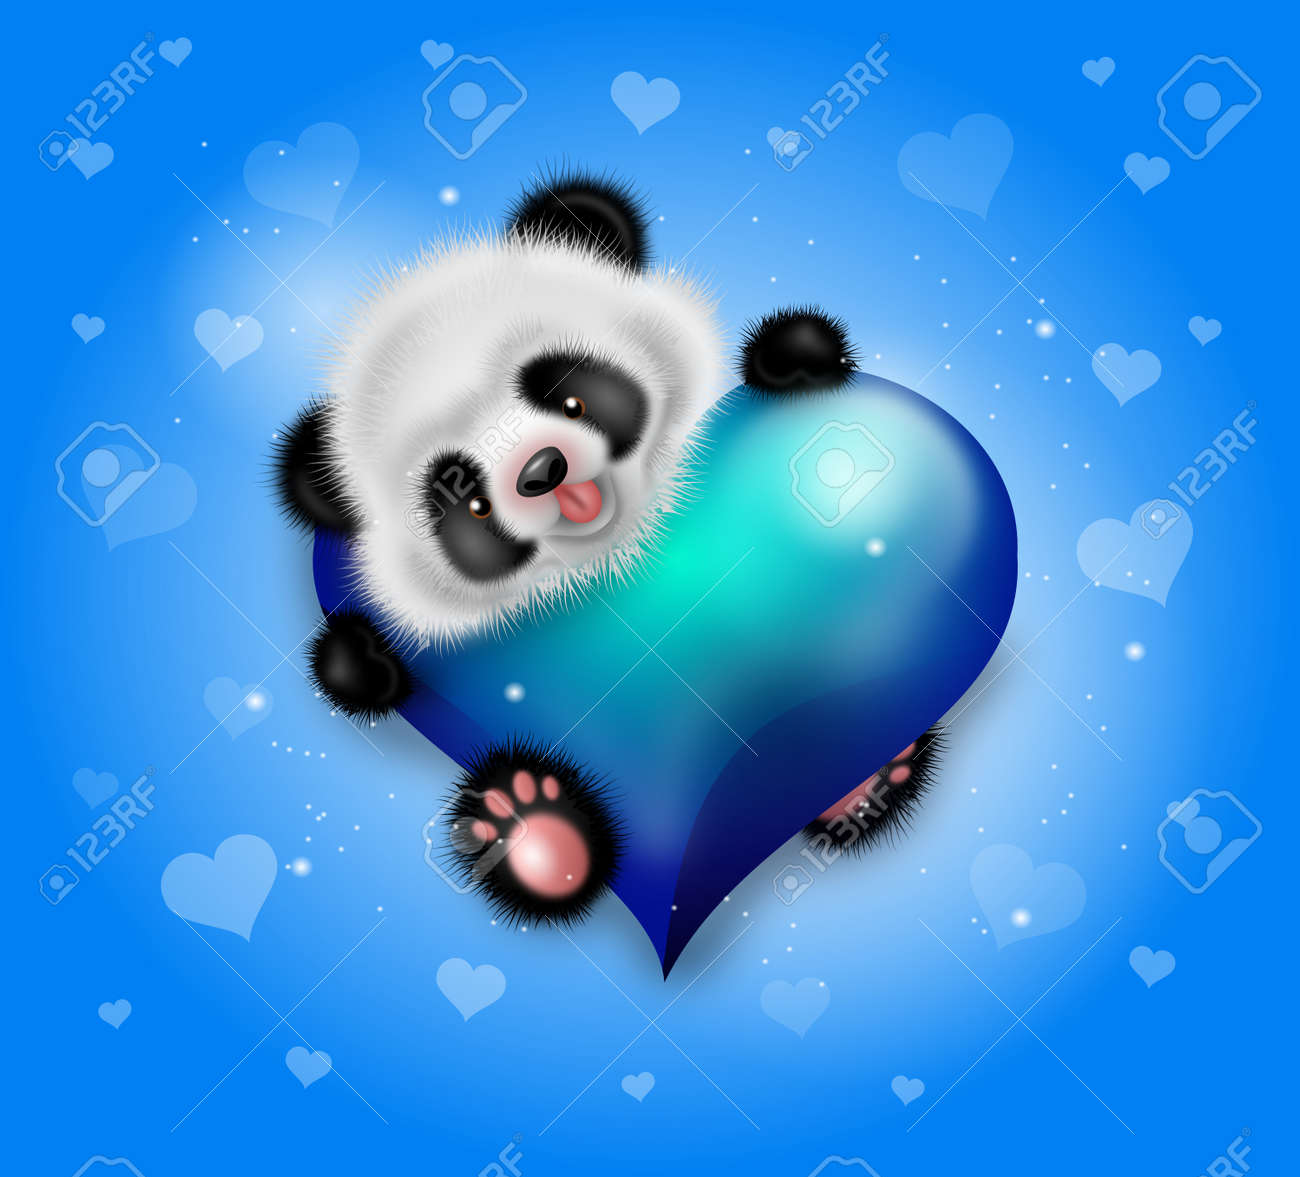 Illustration Of Cute Panda Bear With Blue Heart On Background